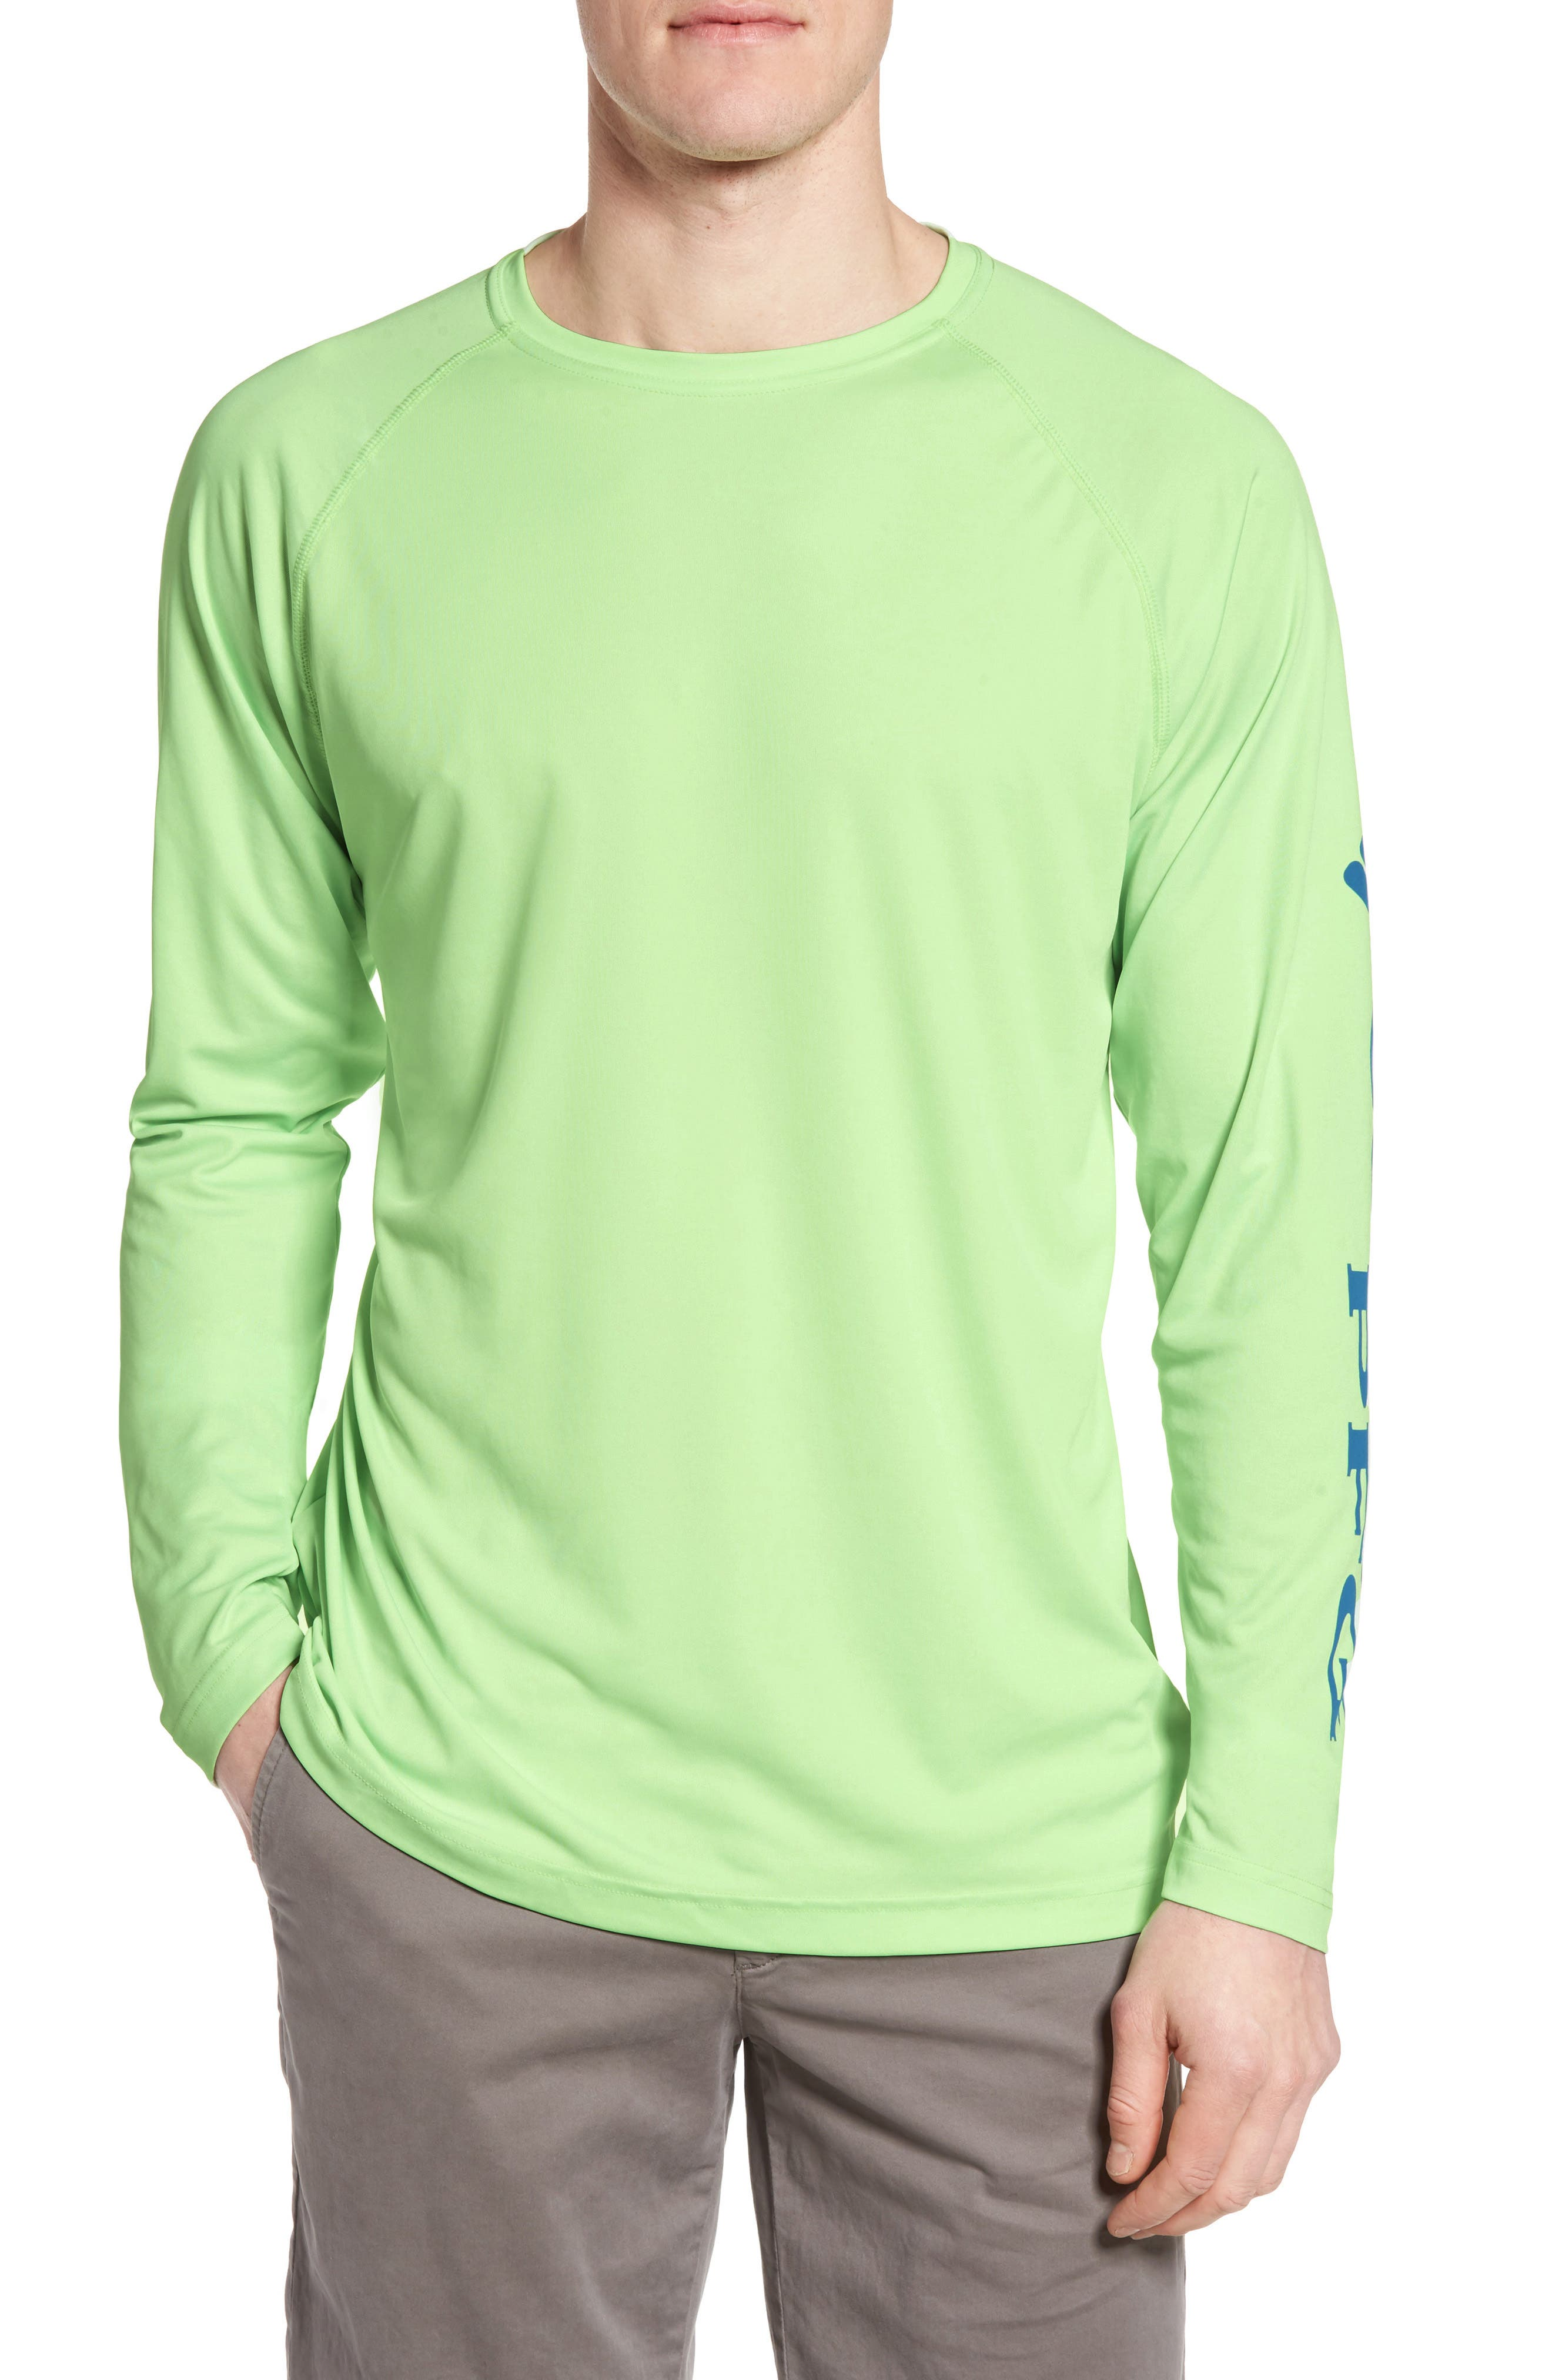 Columbia PFG Terminal Tackle Performance Long Sleeve T-Shirt